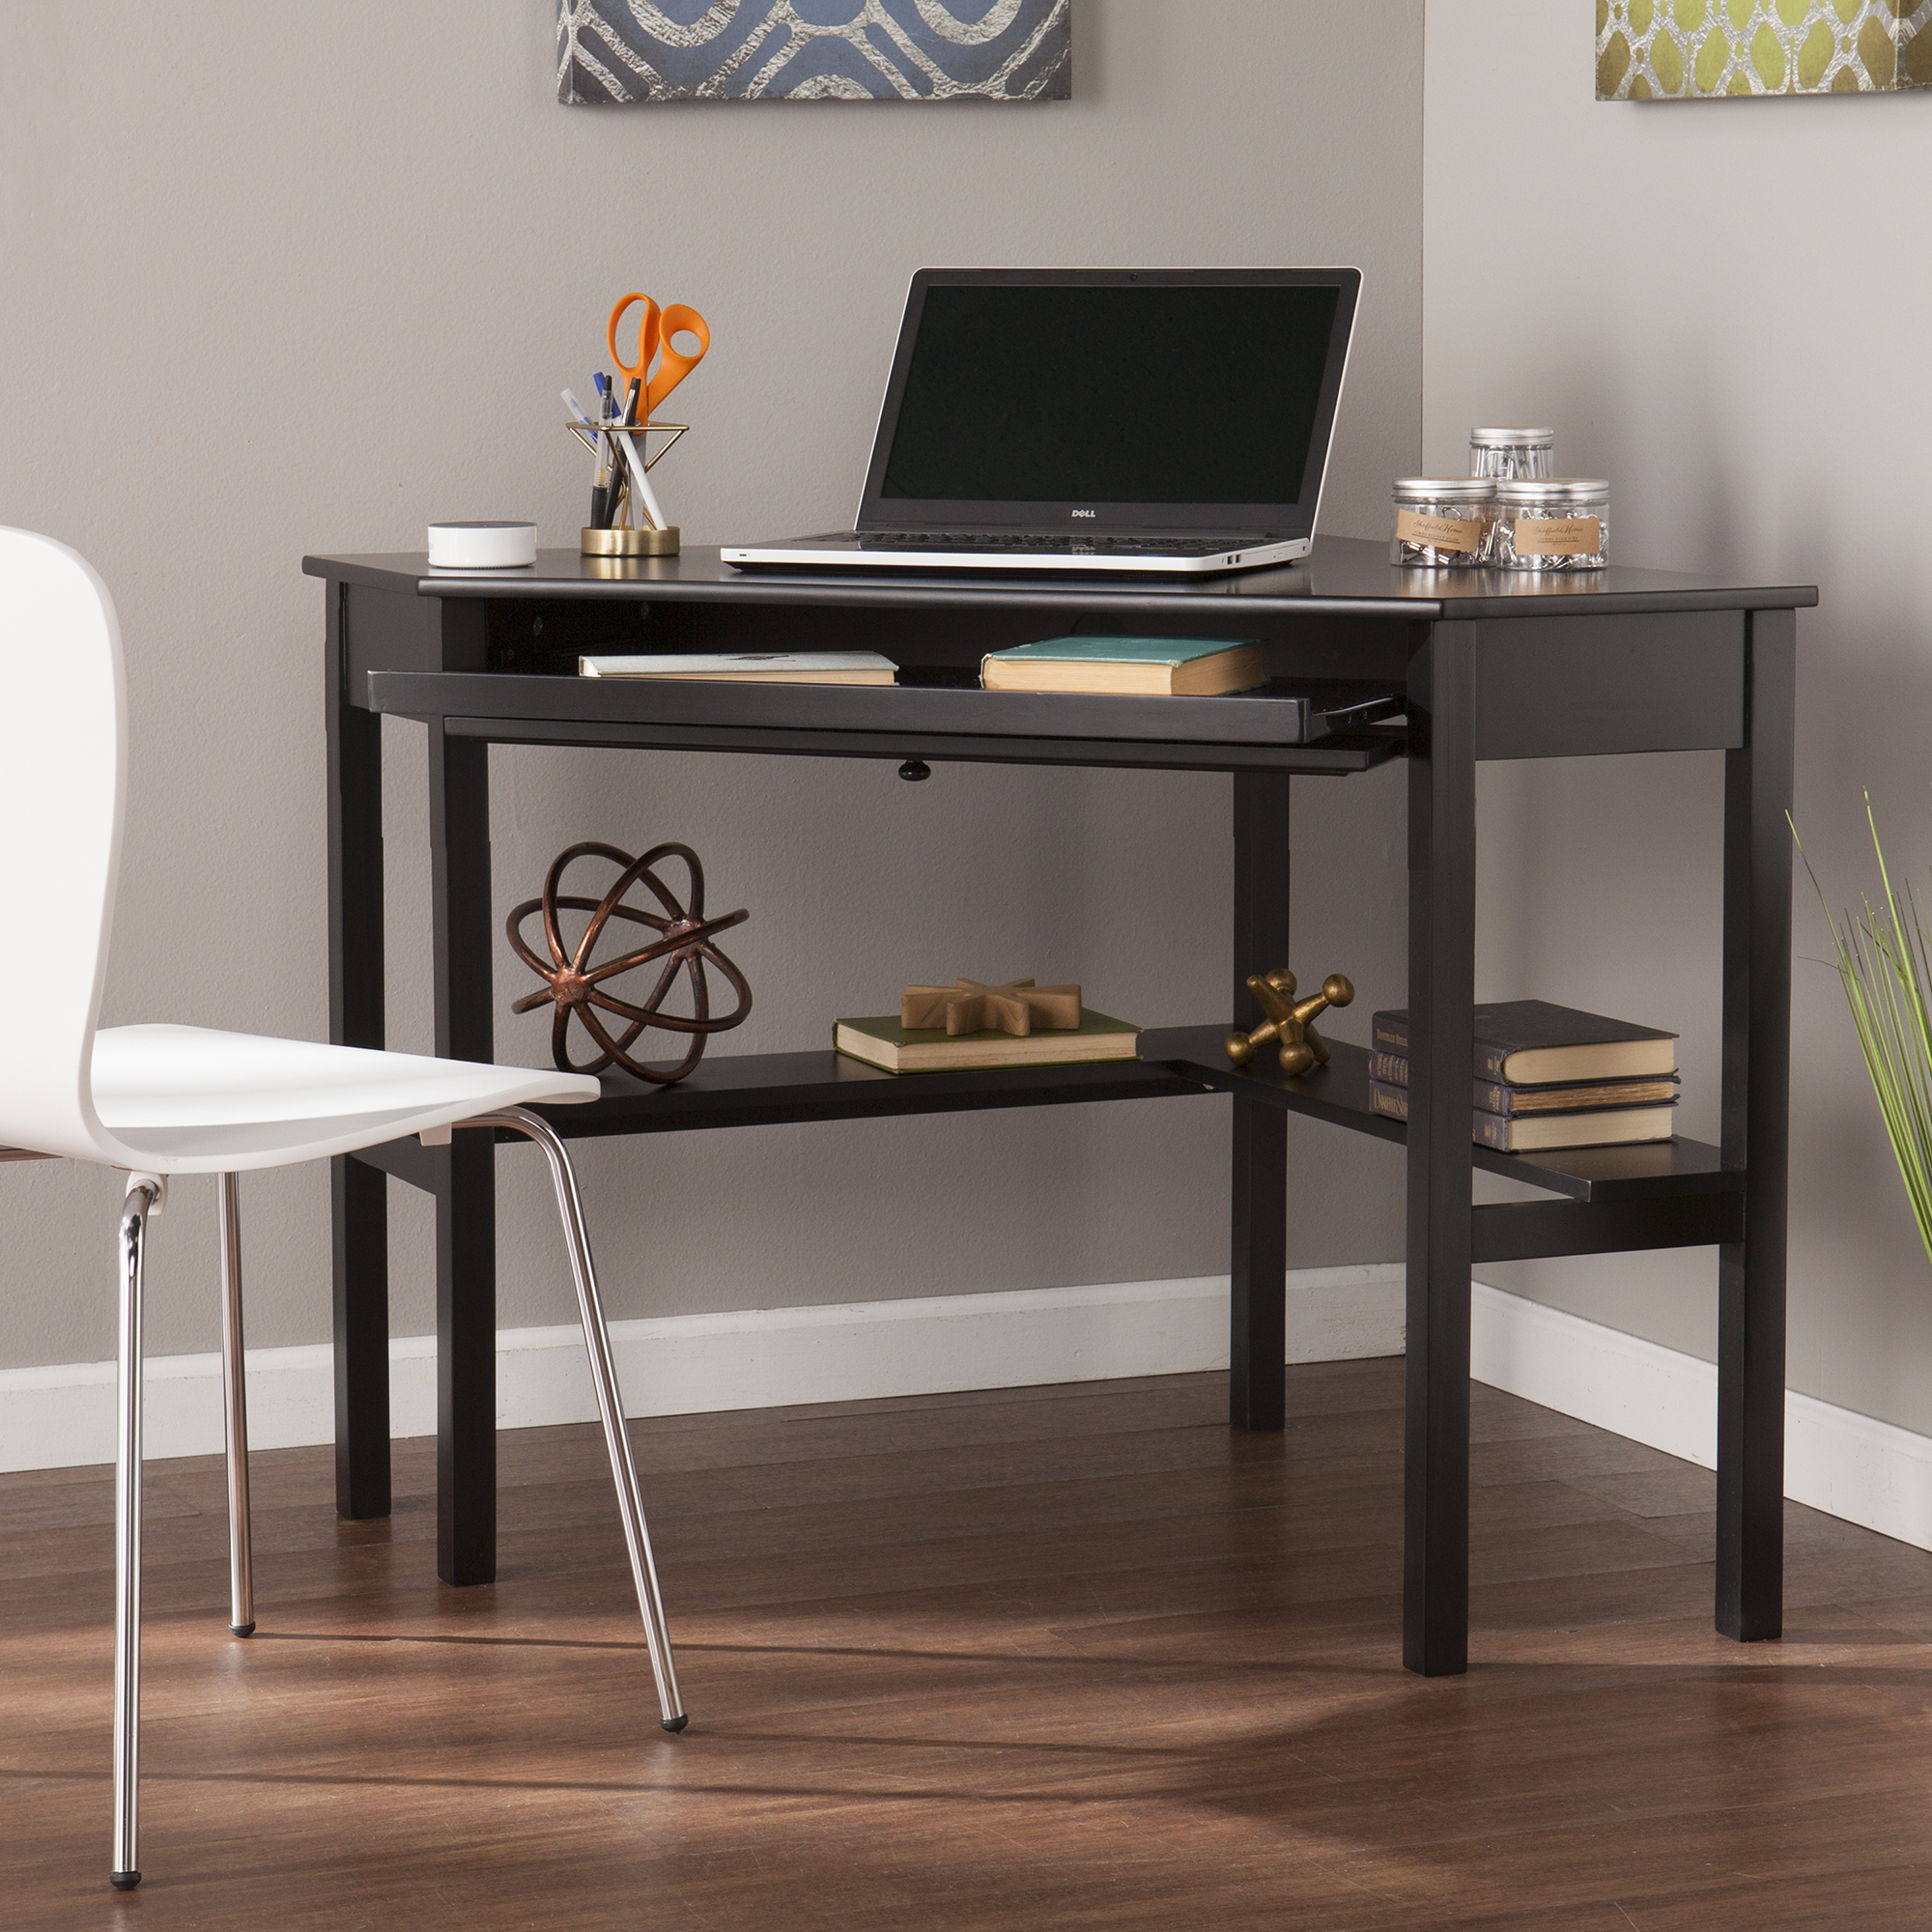 Home Office Desk: Farmhouse & Rustic Home Office Furniture